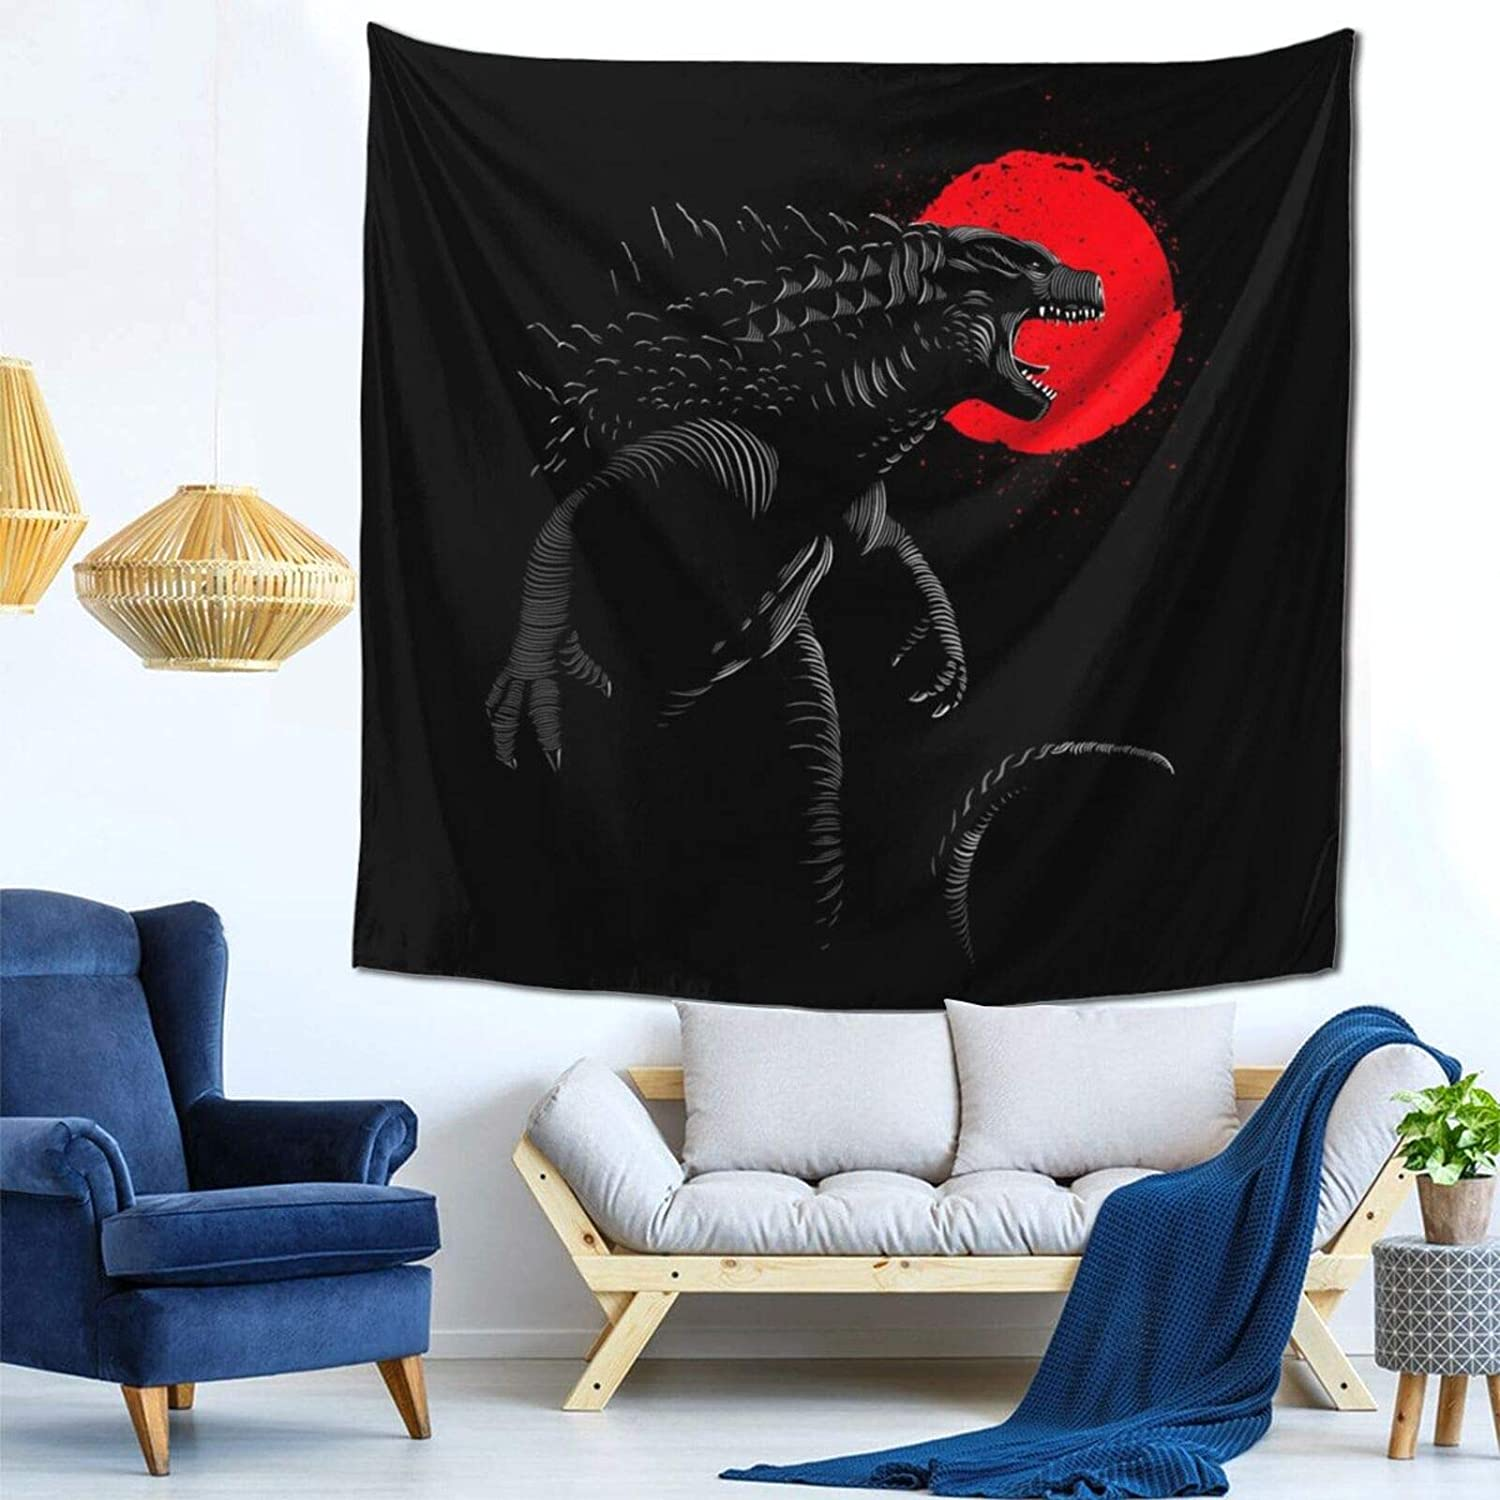 1033 Godzilla Destroy Wall Hanging Tapestry for Living Room and Bedroom Spreads Good Vibes 59×59 Inches